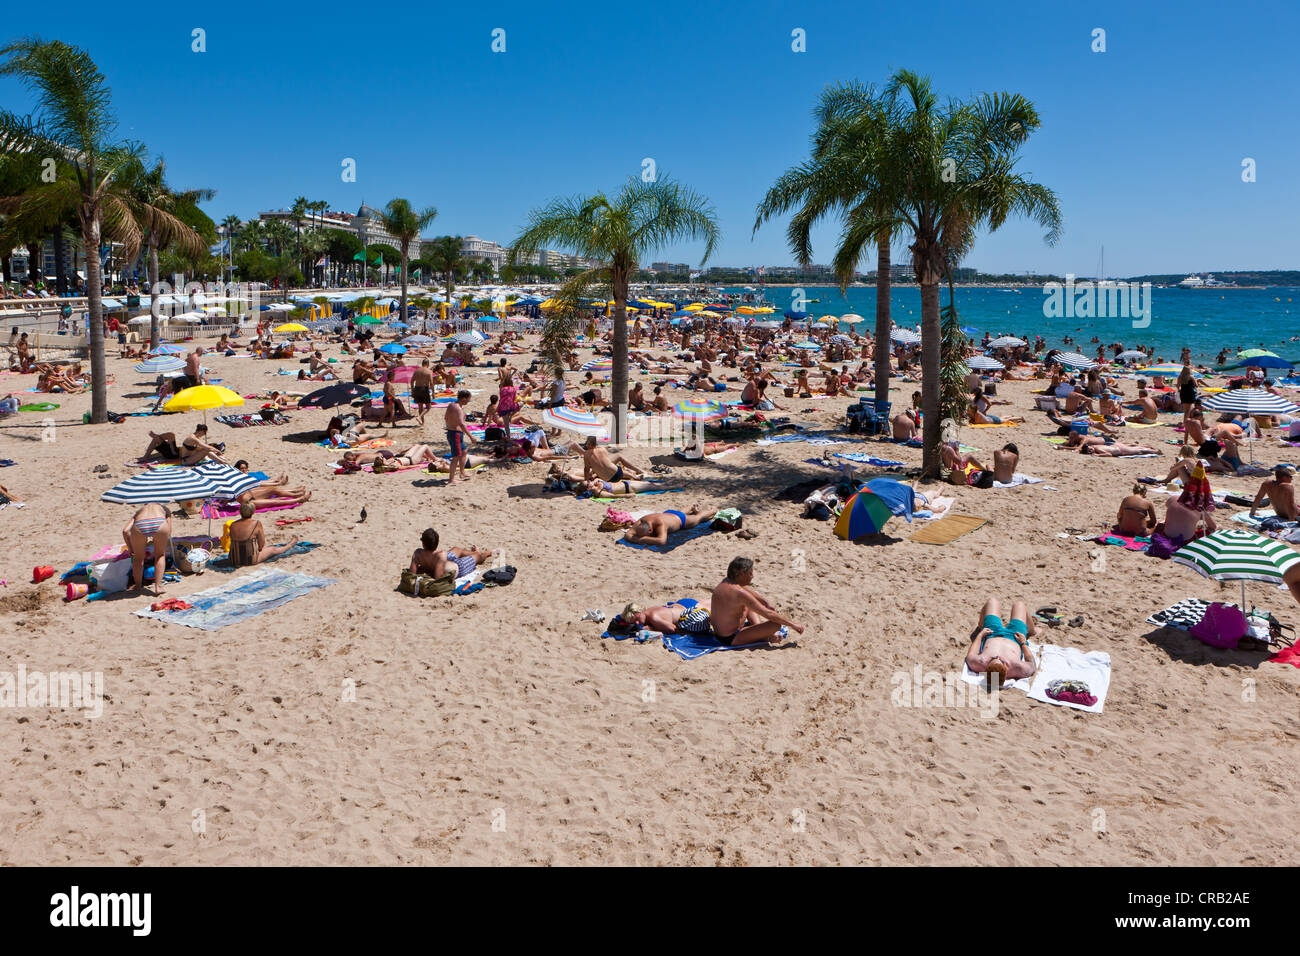 People on the beach of Cannes, at the Croisette, Côte d'Azur, Southern France, Europe, PublicGround - Stock Image